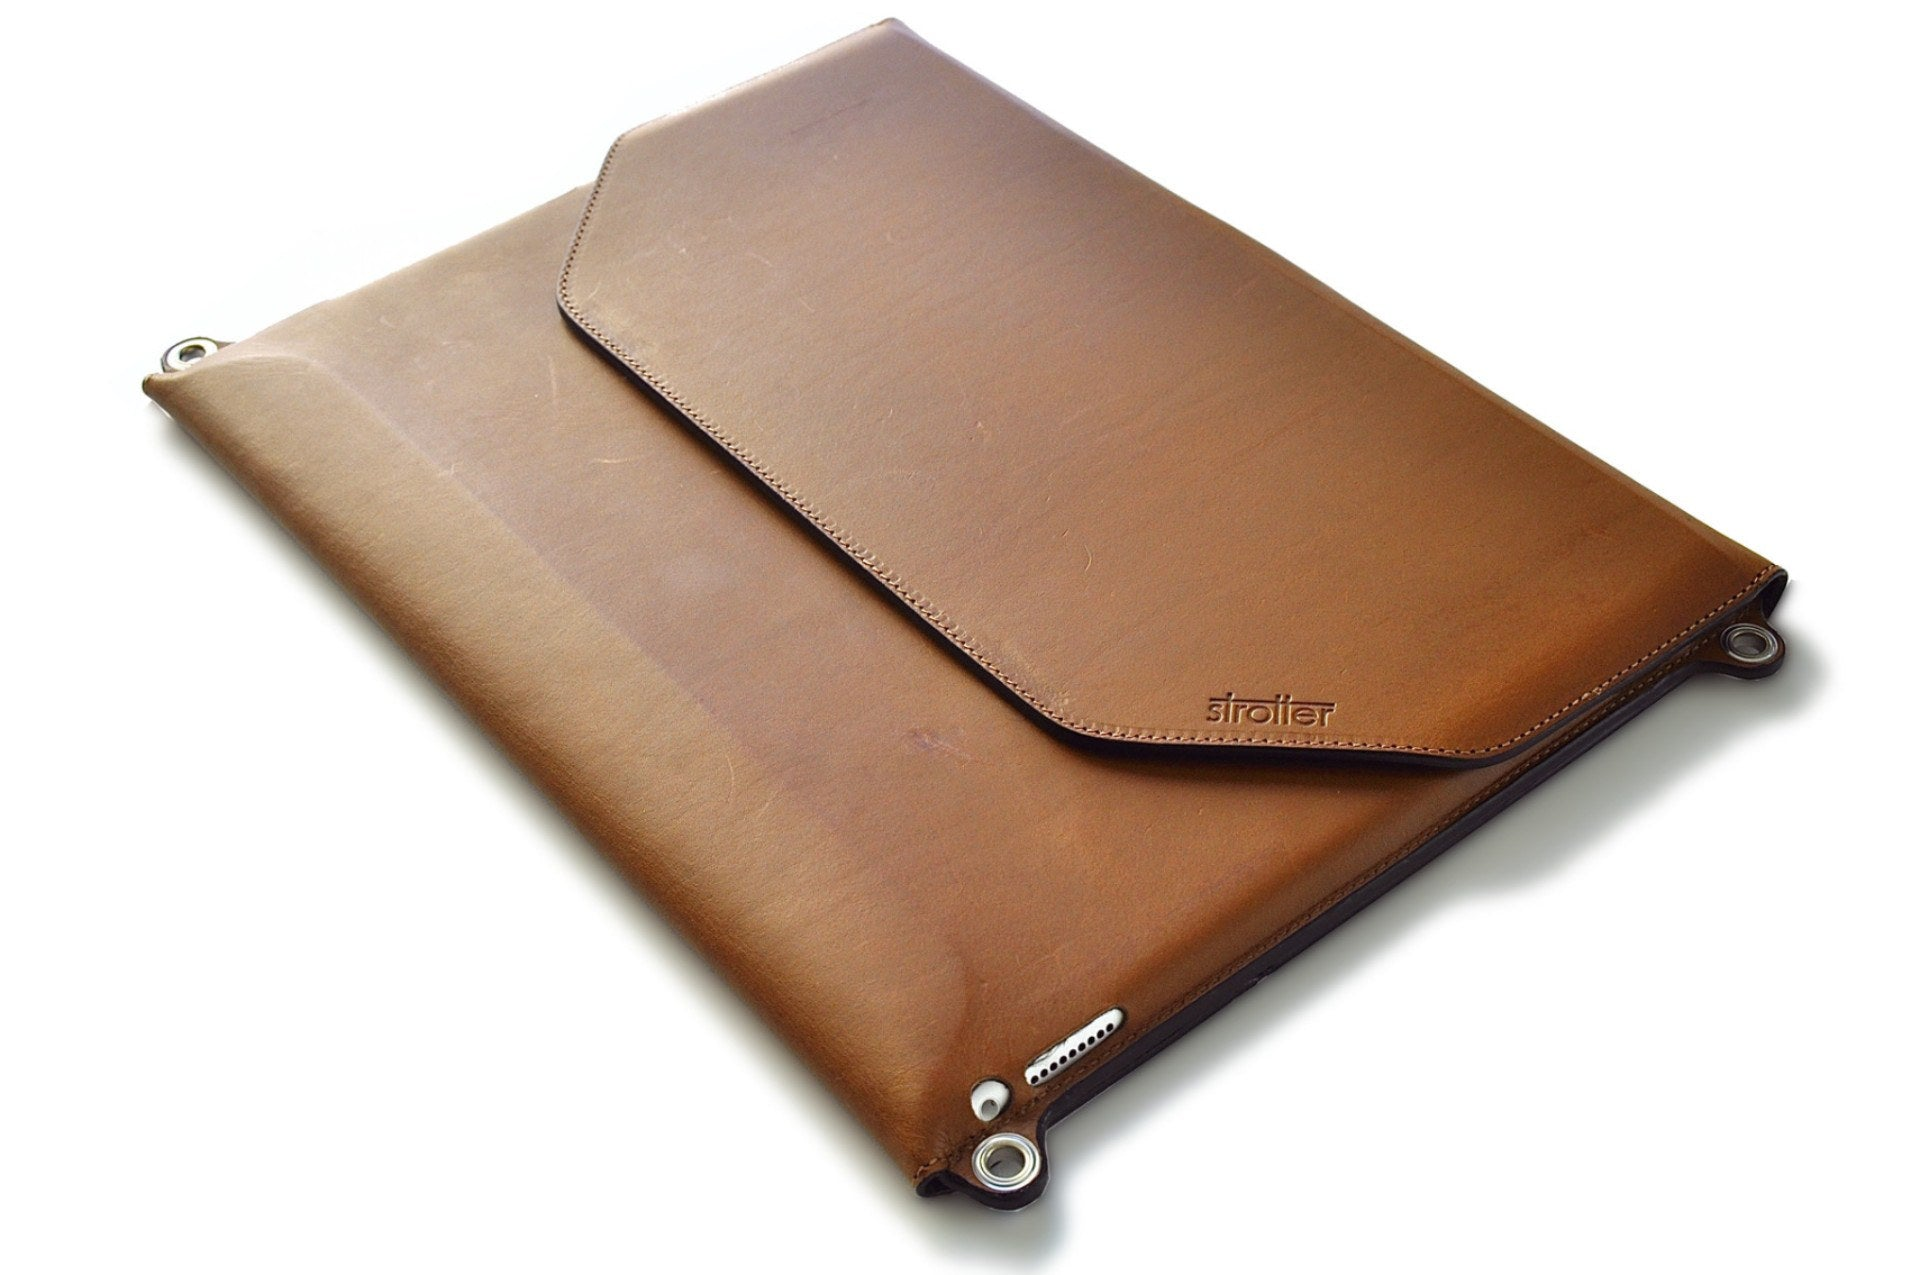 Leather case for ipad Pro with strap. Made in Italy.